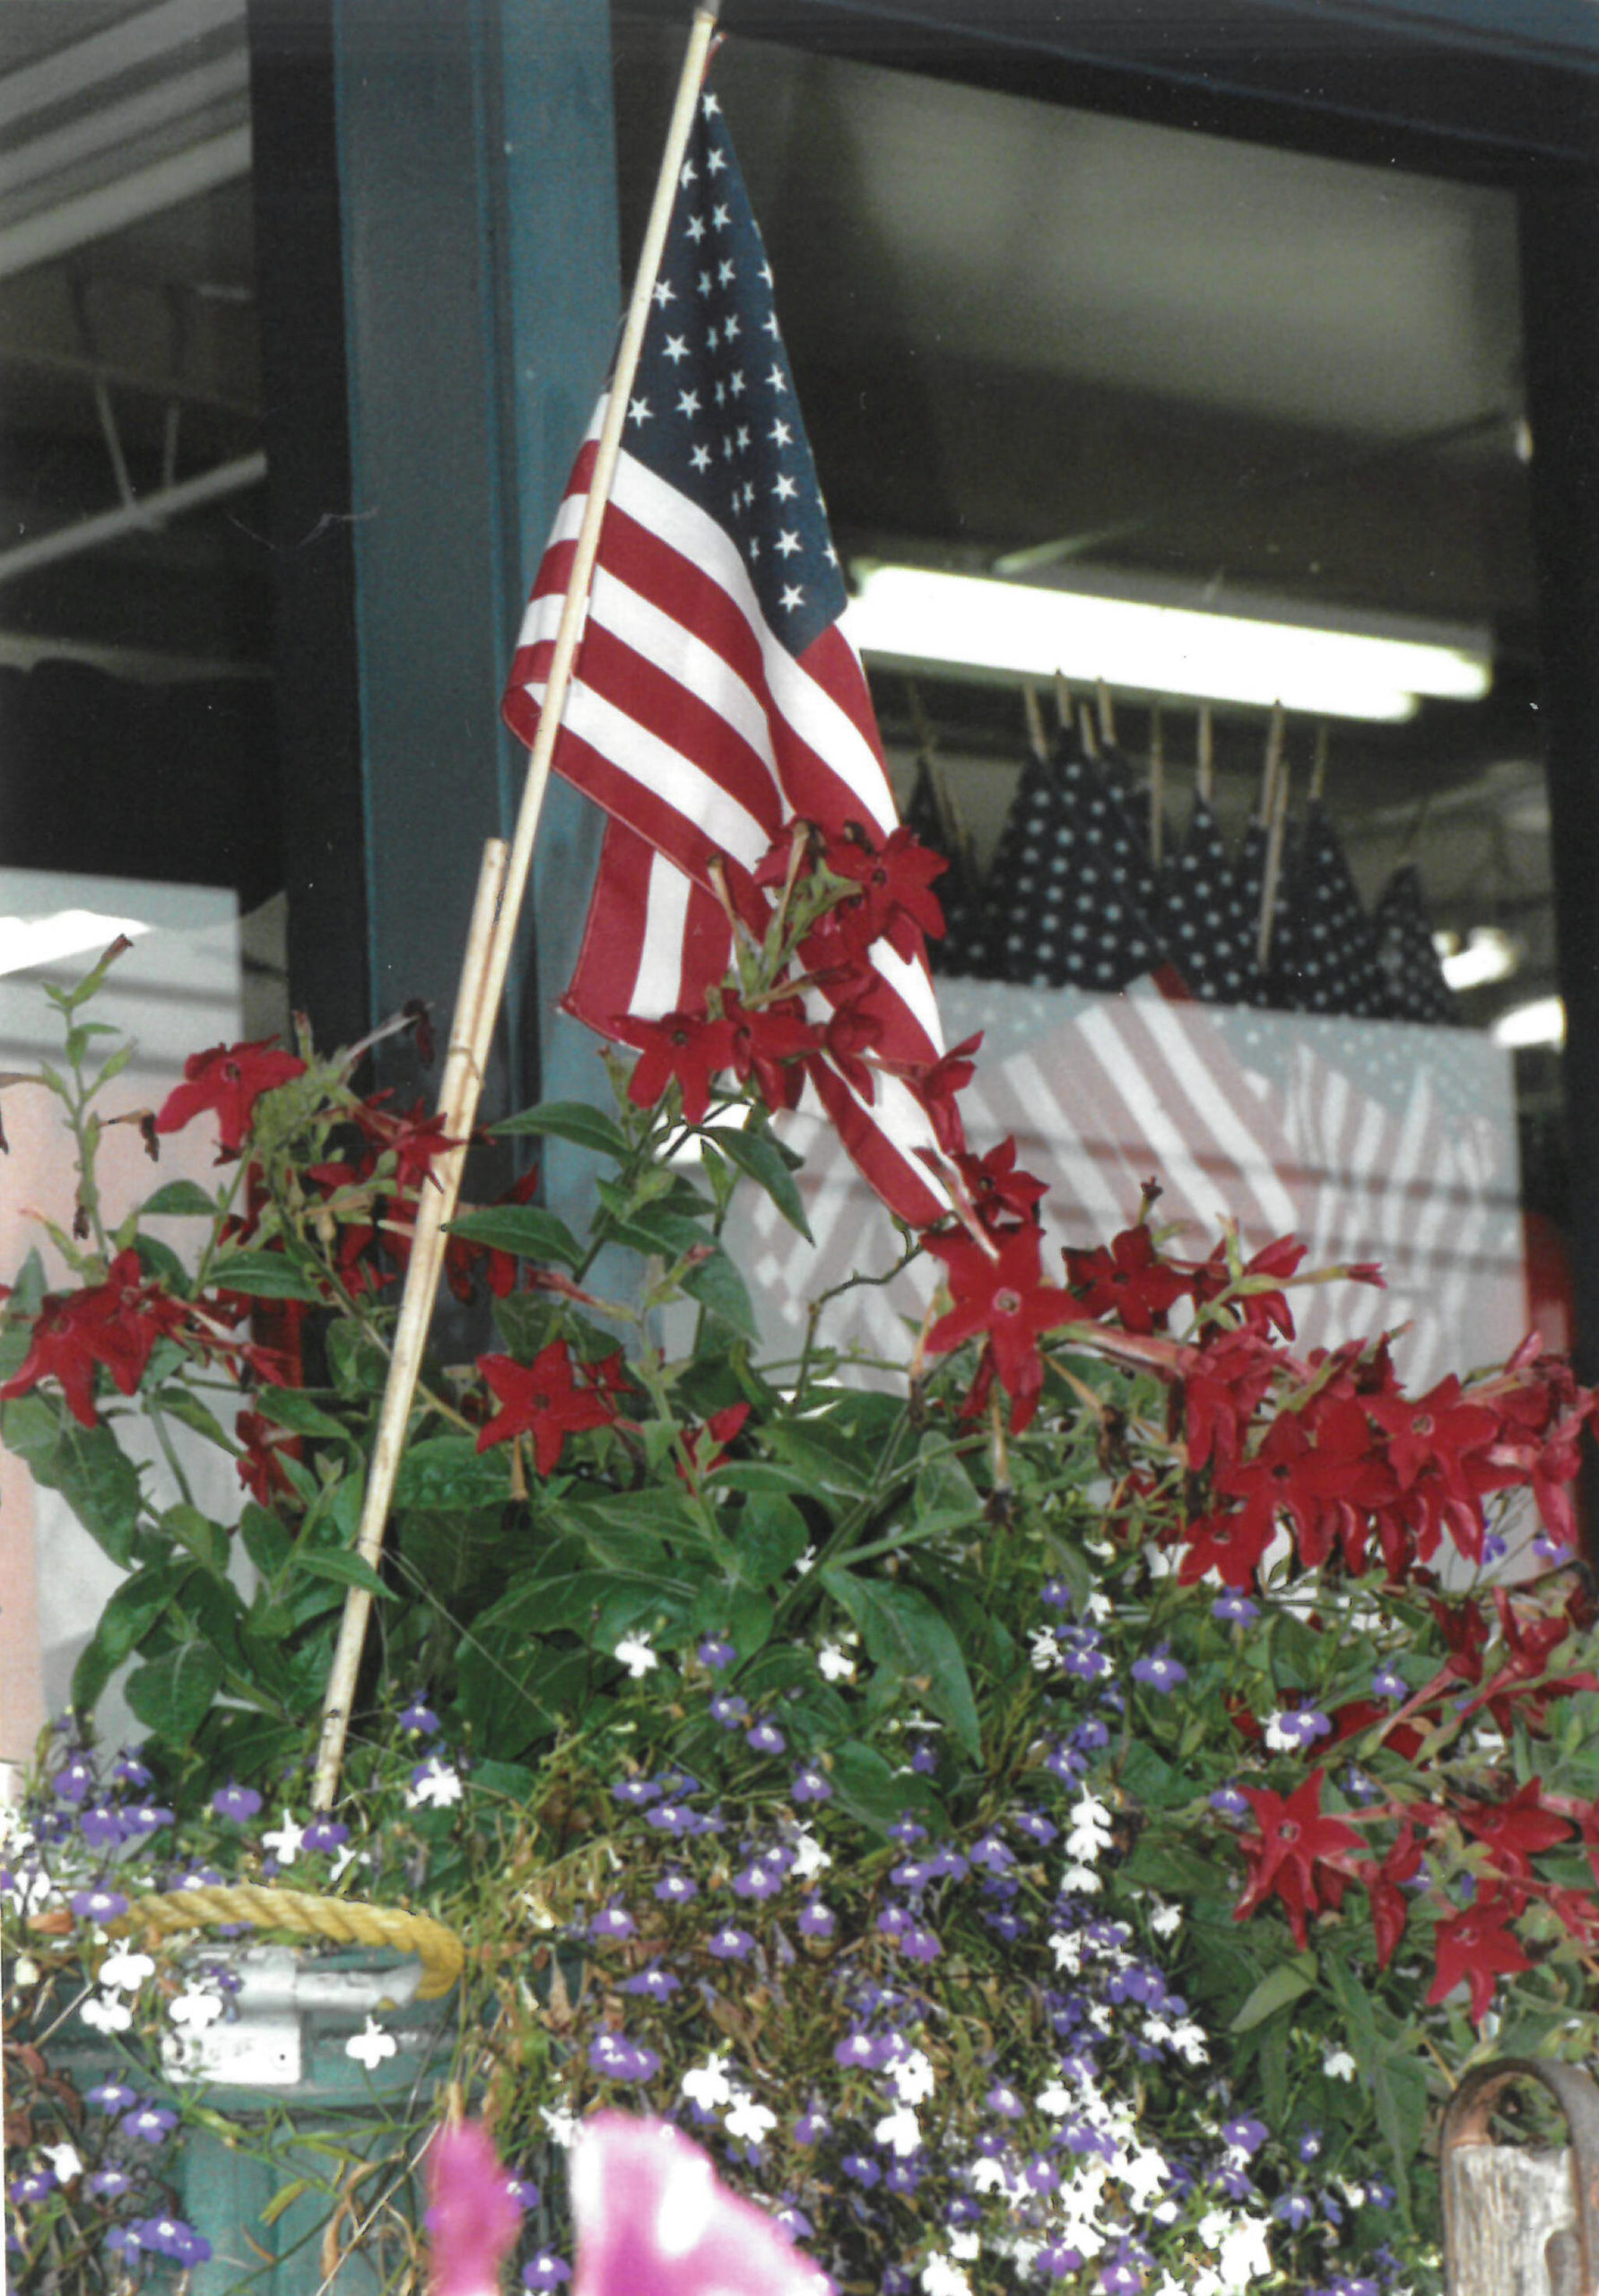 Twenty years ago after the attacks of Sept. 11, 2001, displays of U.S. flags were common, as seen here at NOMAR in Homer the week after the attacks. (Homer News file photo)